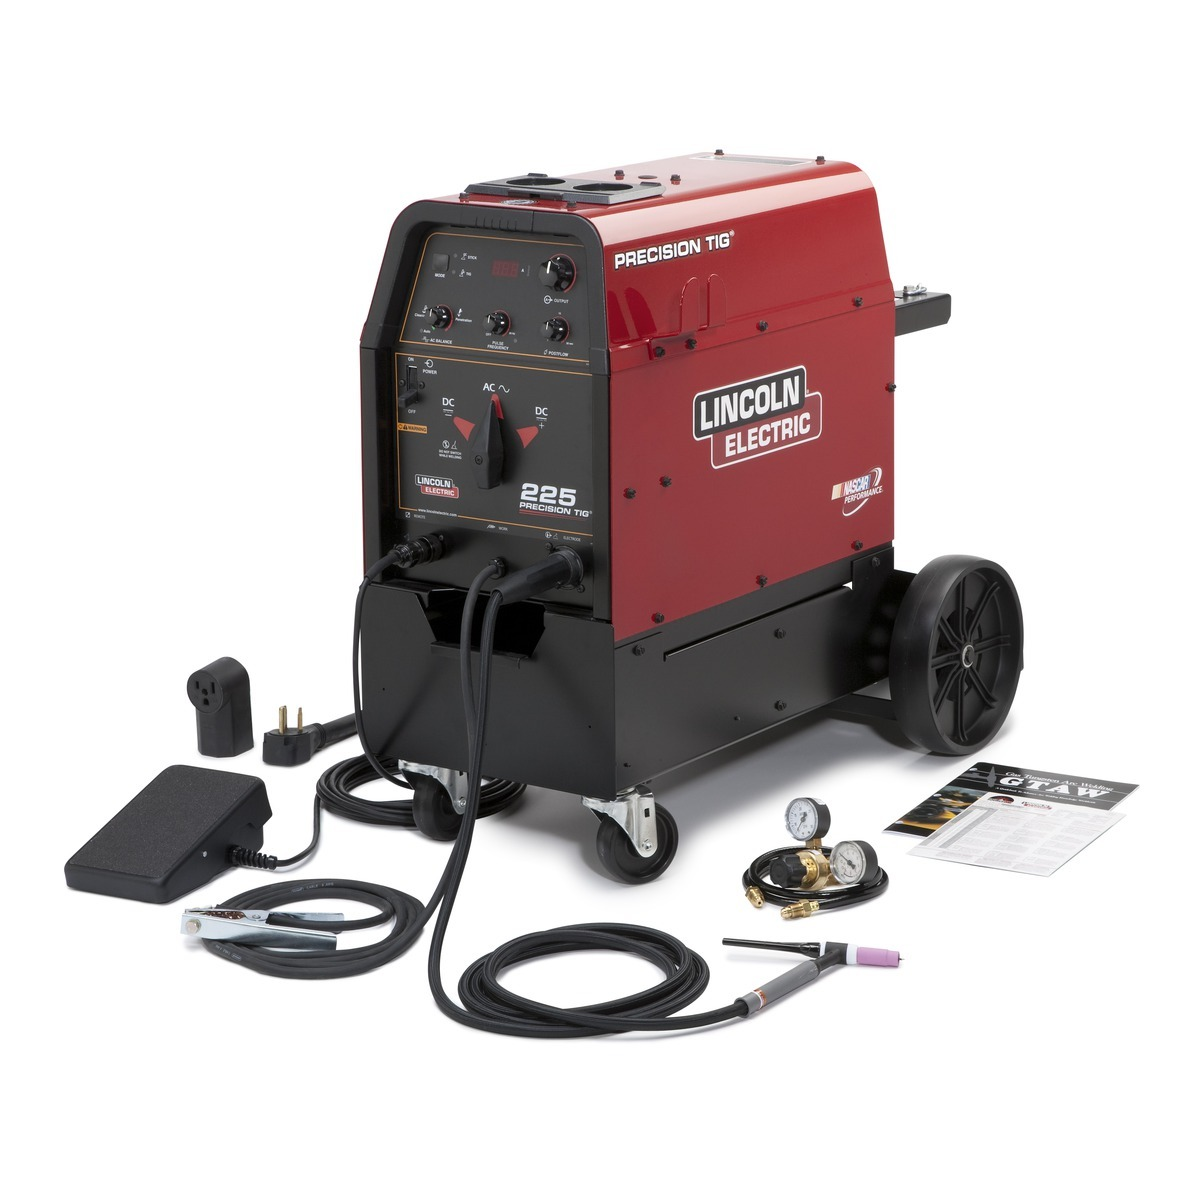 Tig Welding Machine Diagram Airgas Lincoln Electric Precision 225 Ready Pak Welder 208